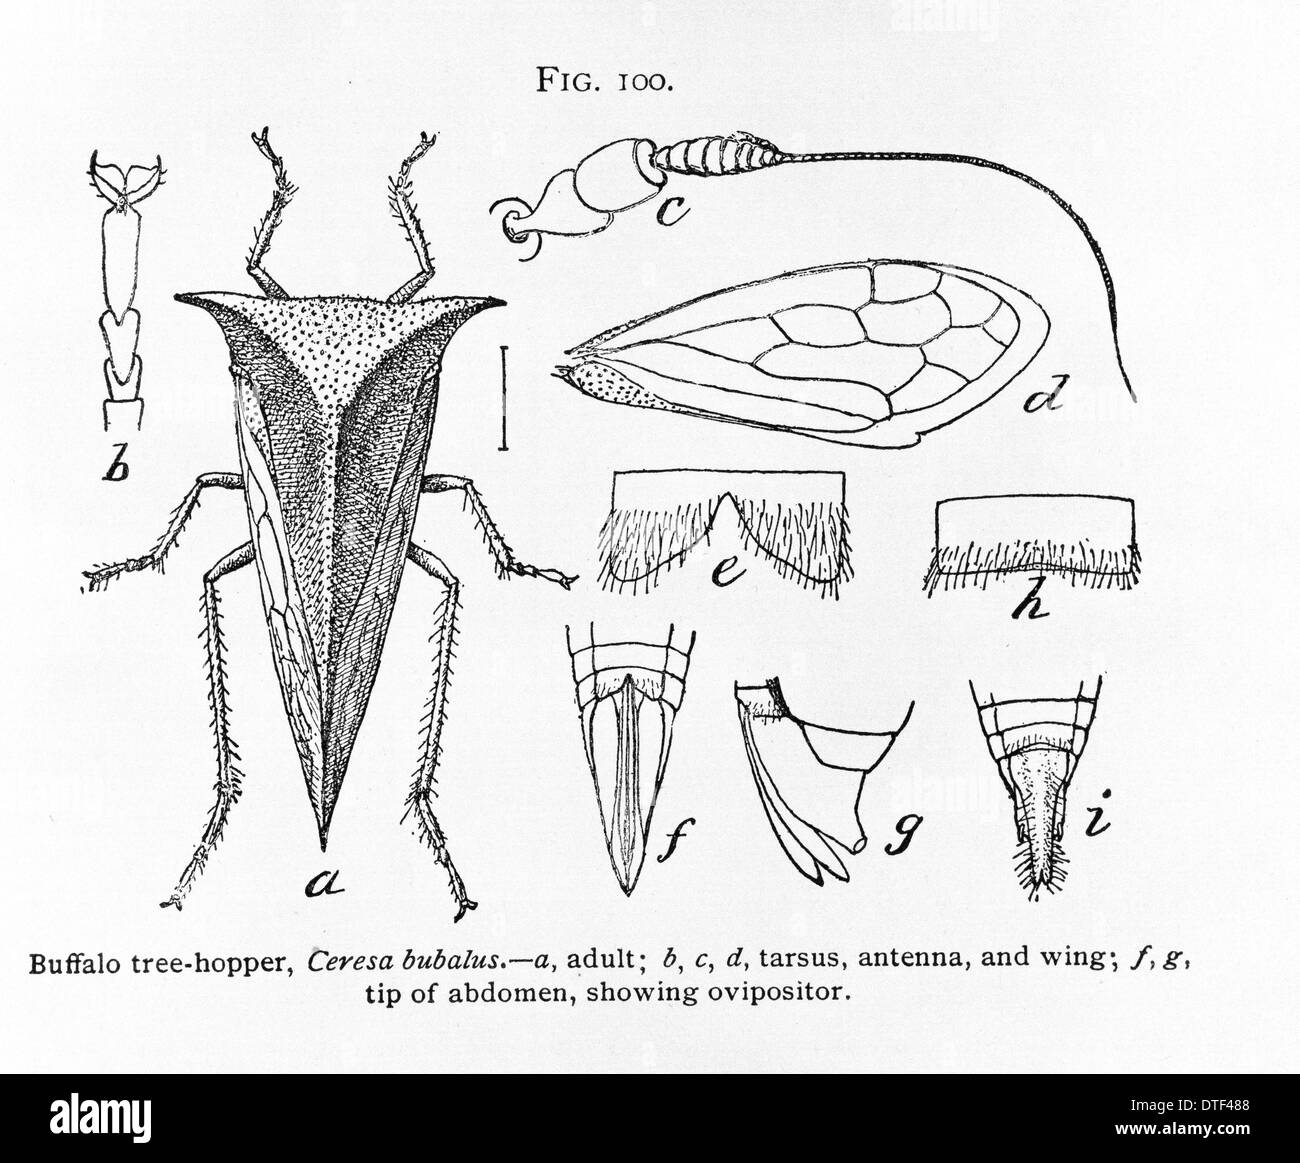 Fig 100. Ceresa bubalus, buffalo tree-hopper - Stock Image